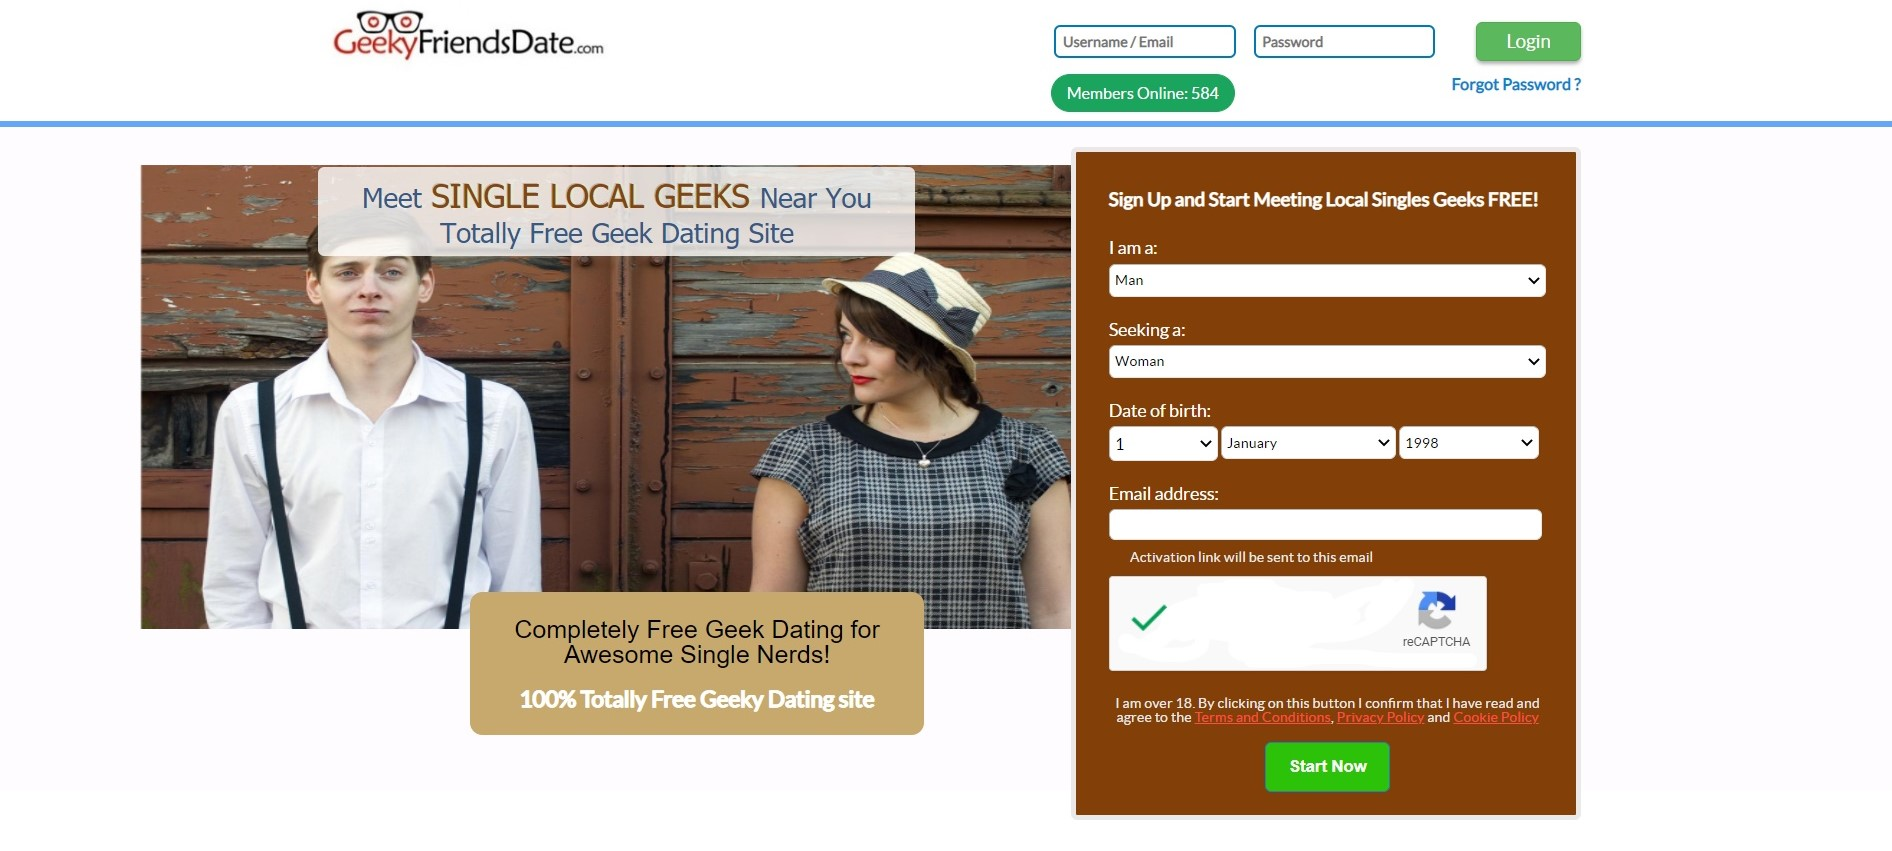 2021 03 07 11 LI - Top 7 dating apps and websites for geeks and gamers